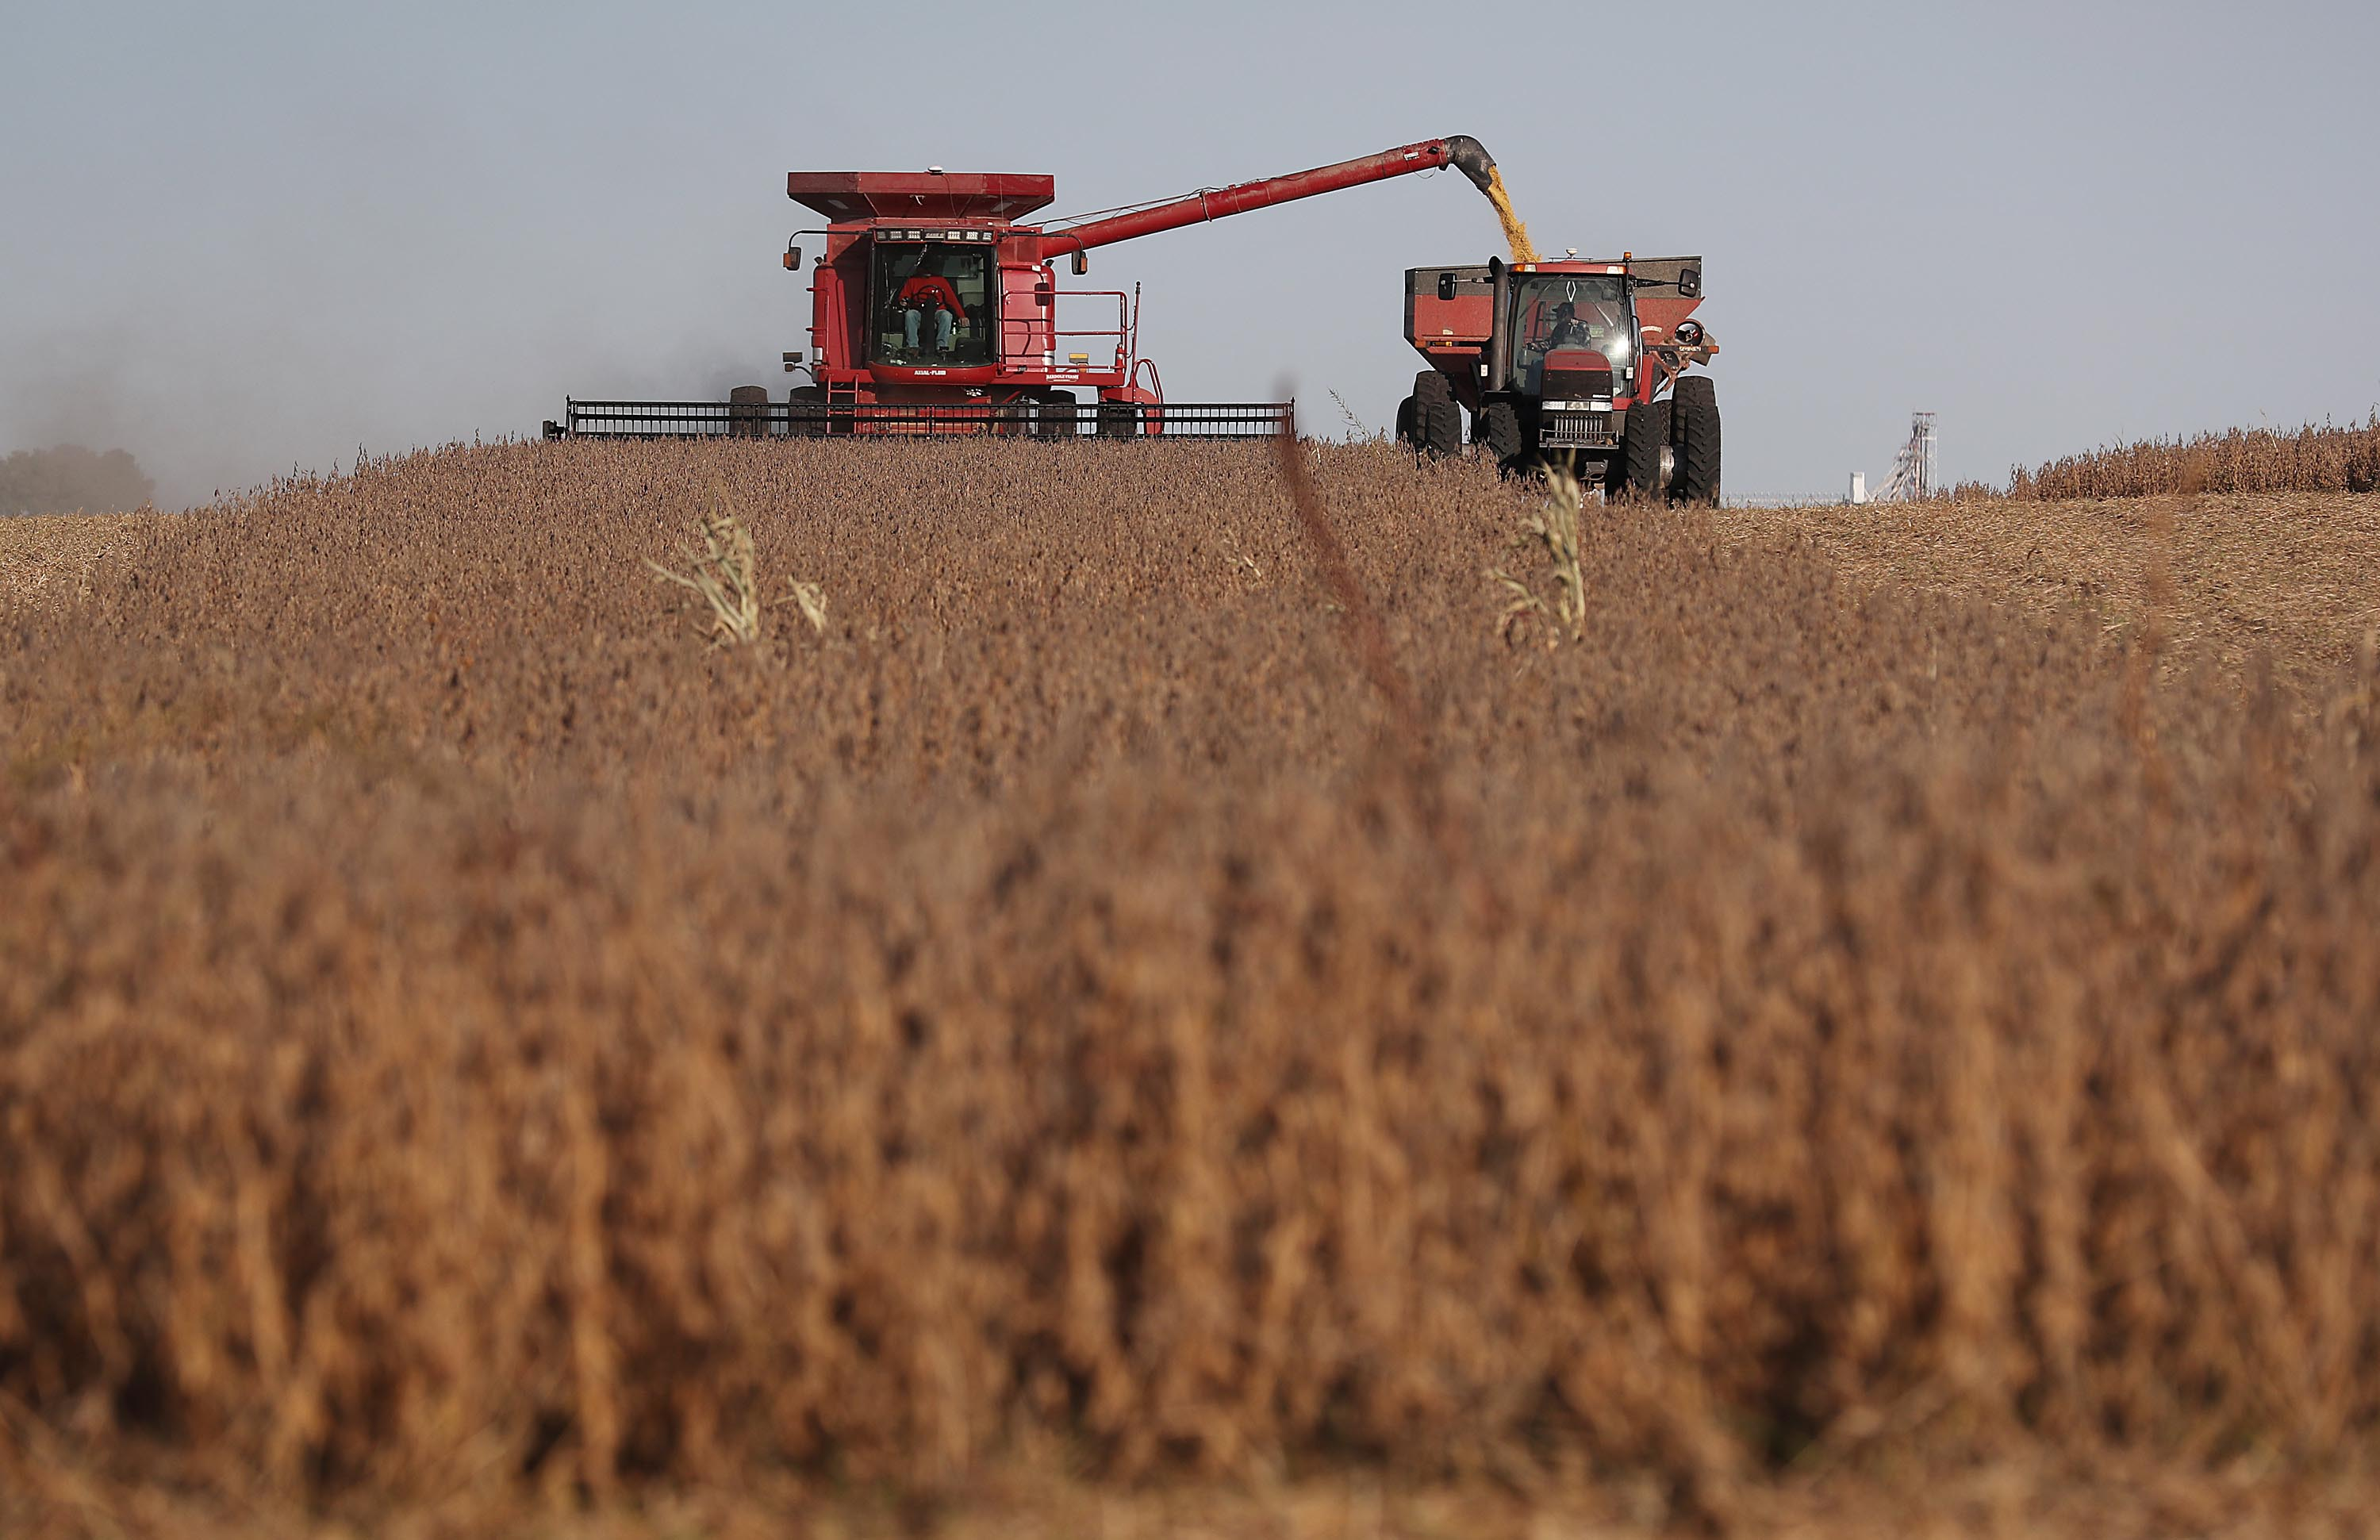 China's buying soybeans again. That could help Trump in key states